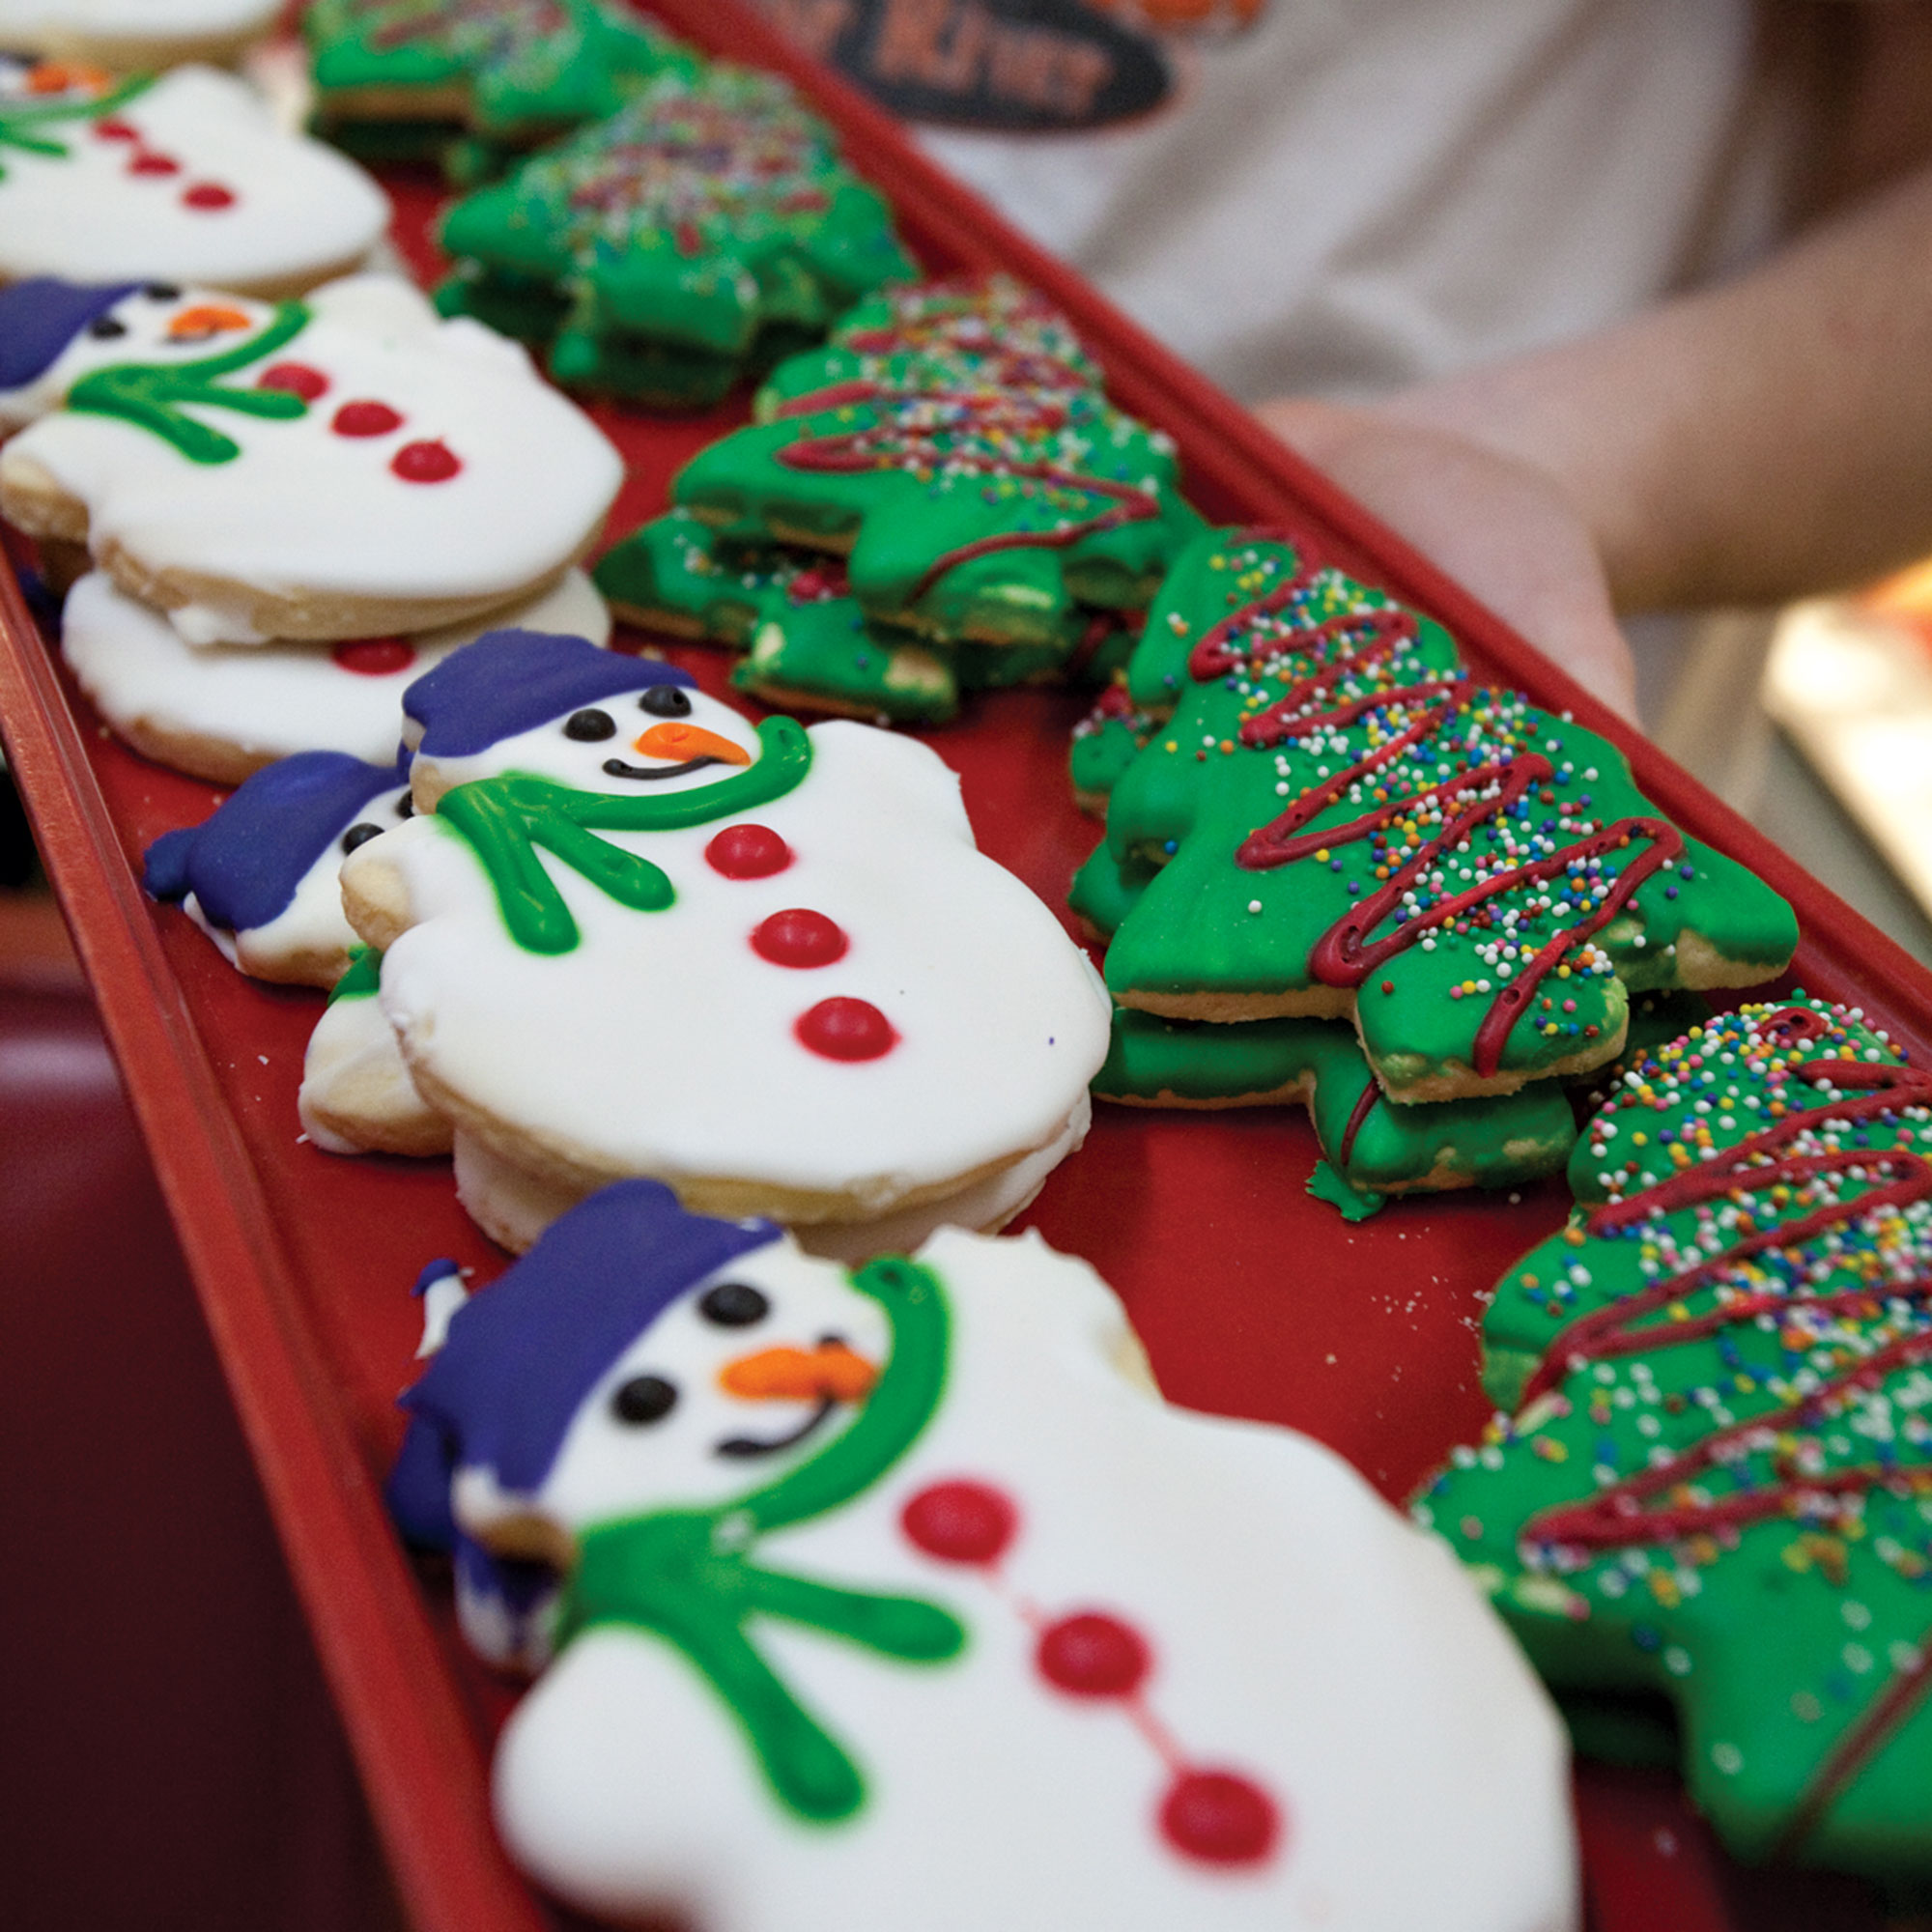 Christmas Cookies at Clear River; Photo by Trish McCabe-Rawls